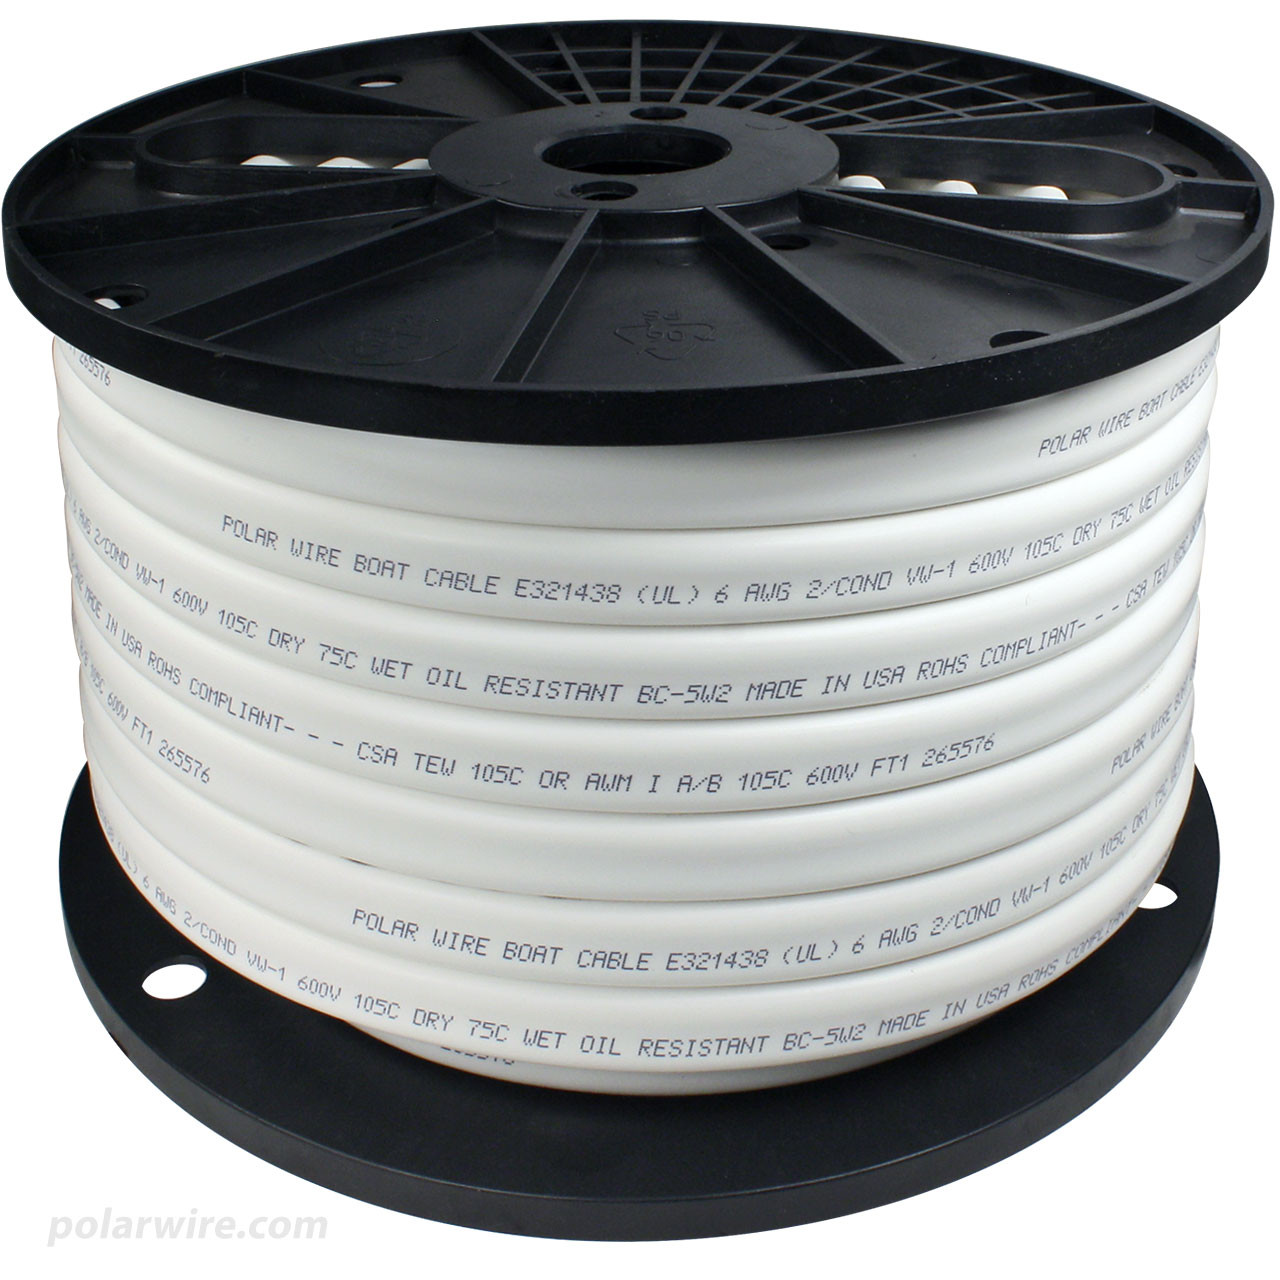 Polar Wire flexible tinned 100% copper  boat cable  in 6 gauge 2 conductor flat profile configuration